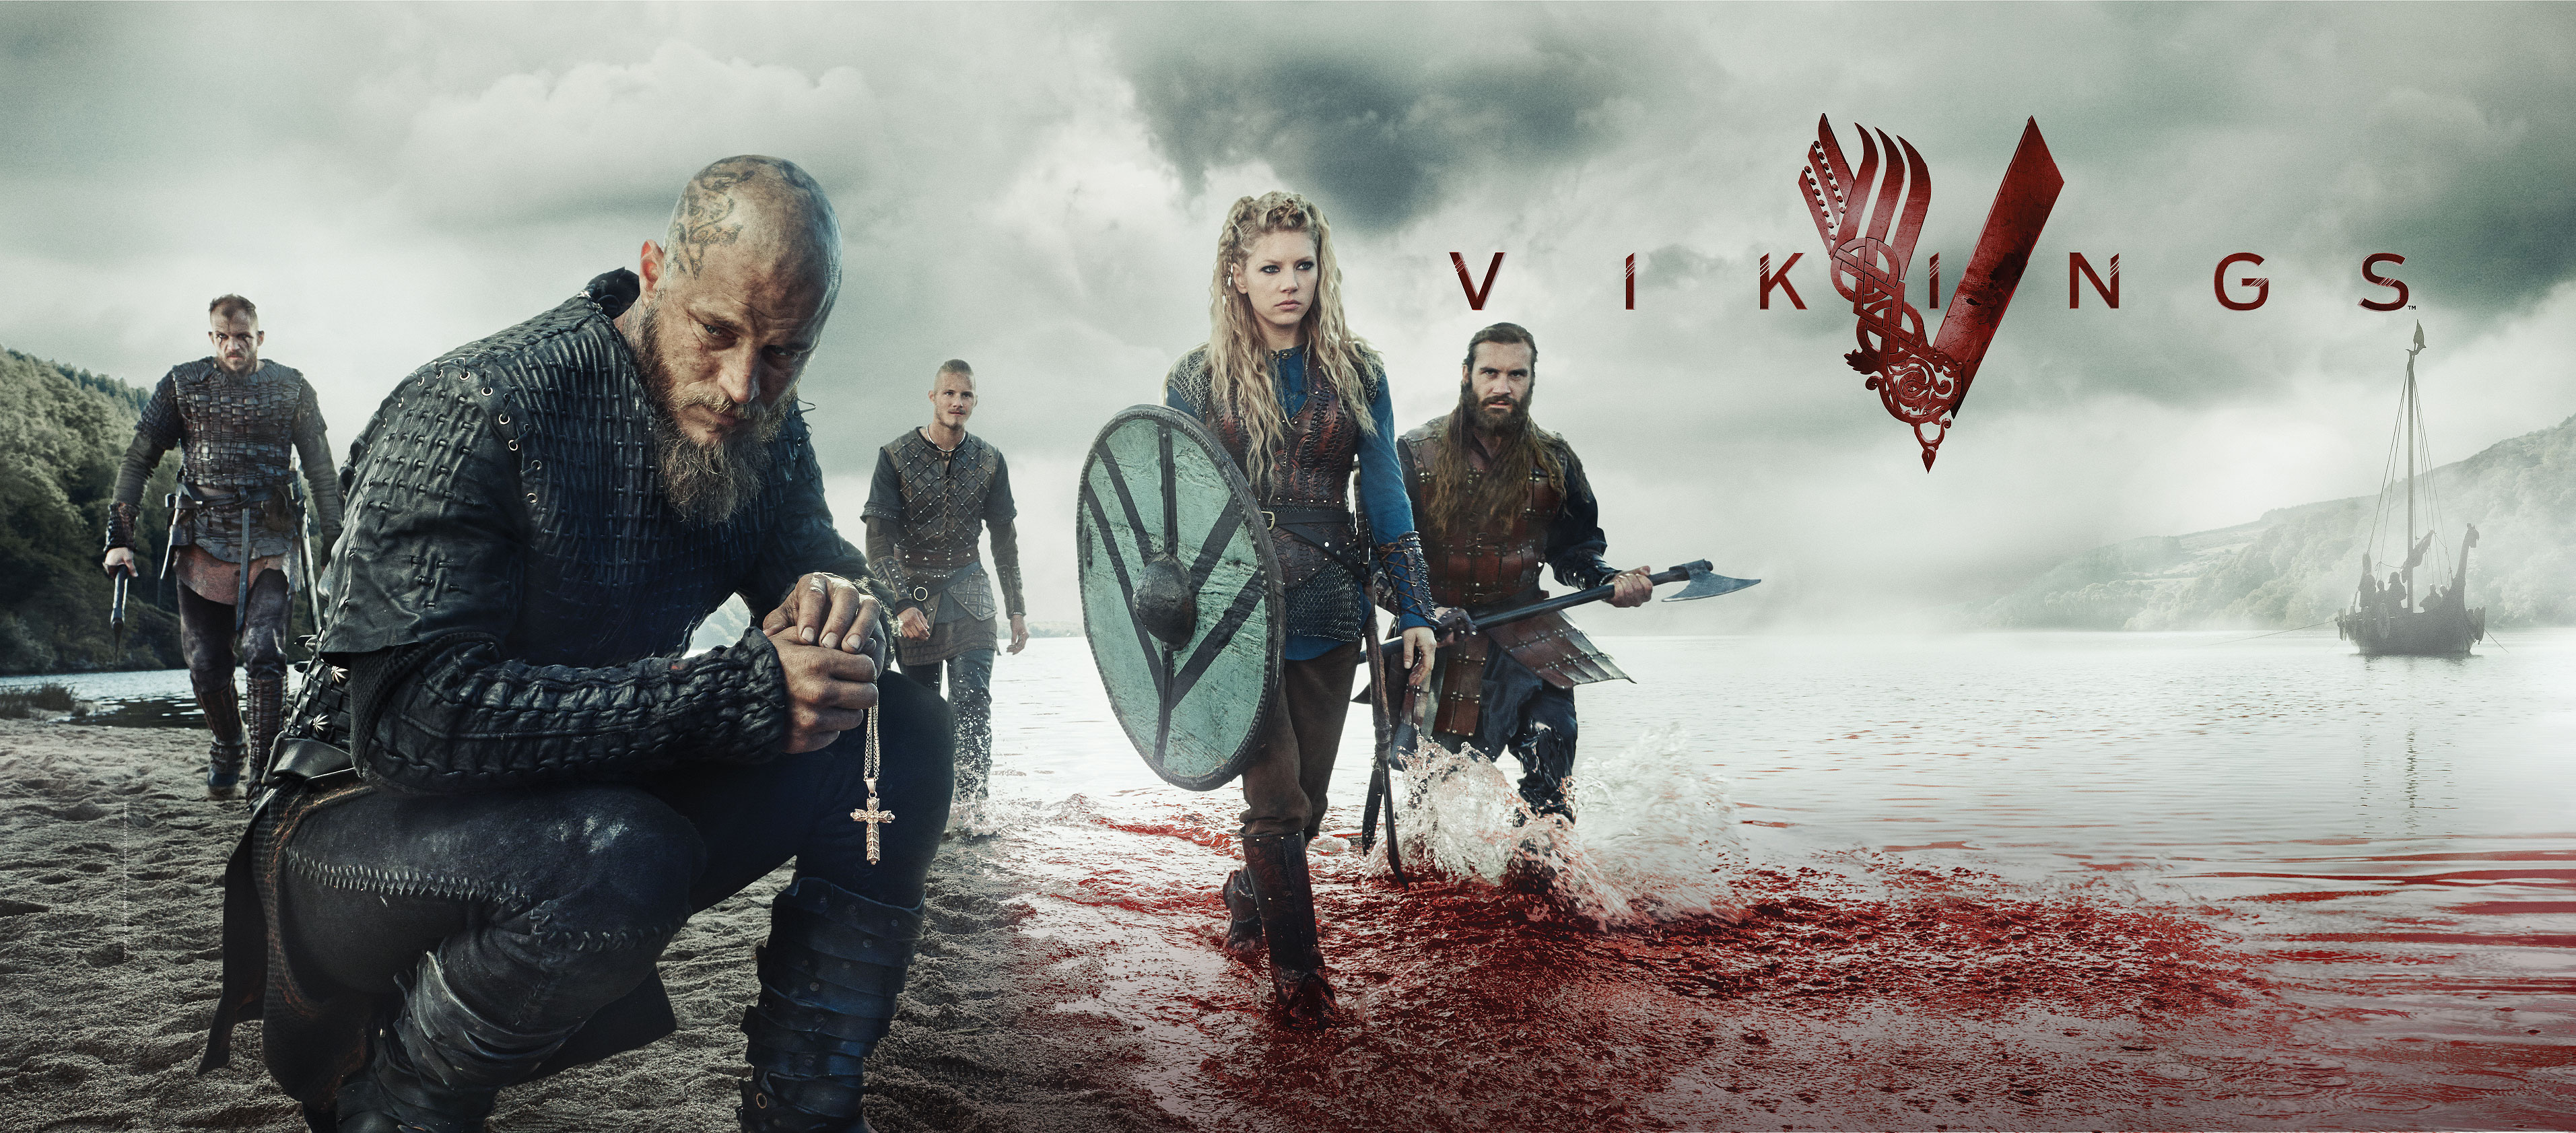 Vikings Wallpapers Top Free Vikings Backgrounds